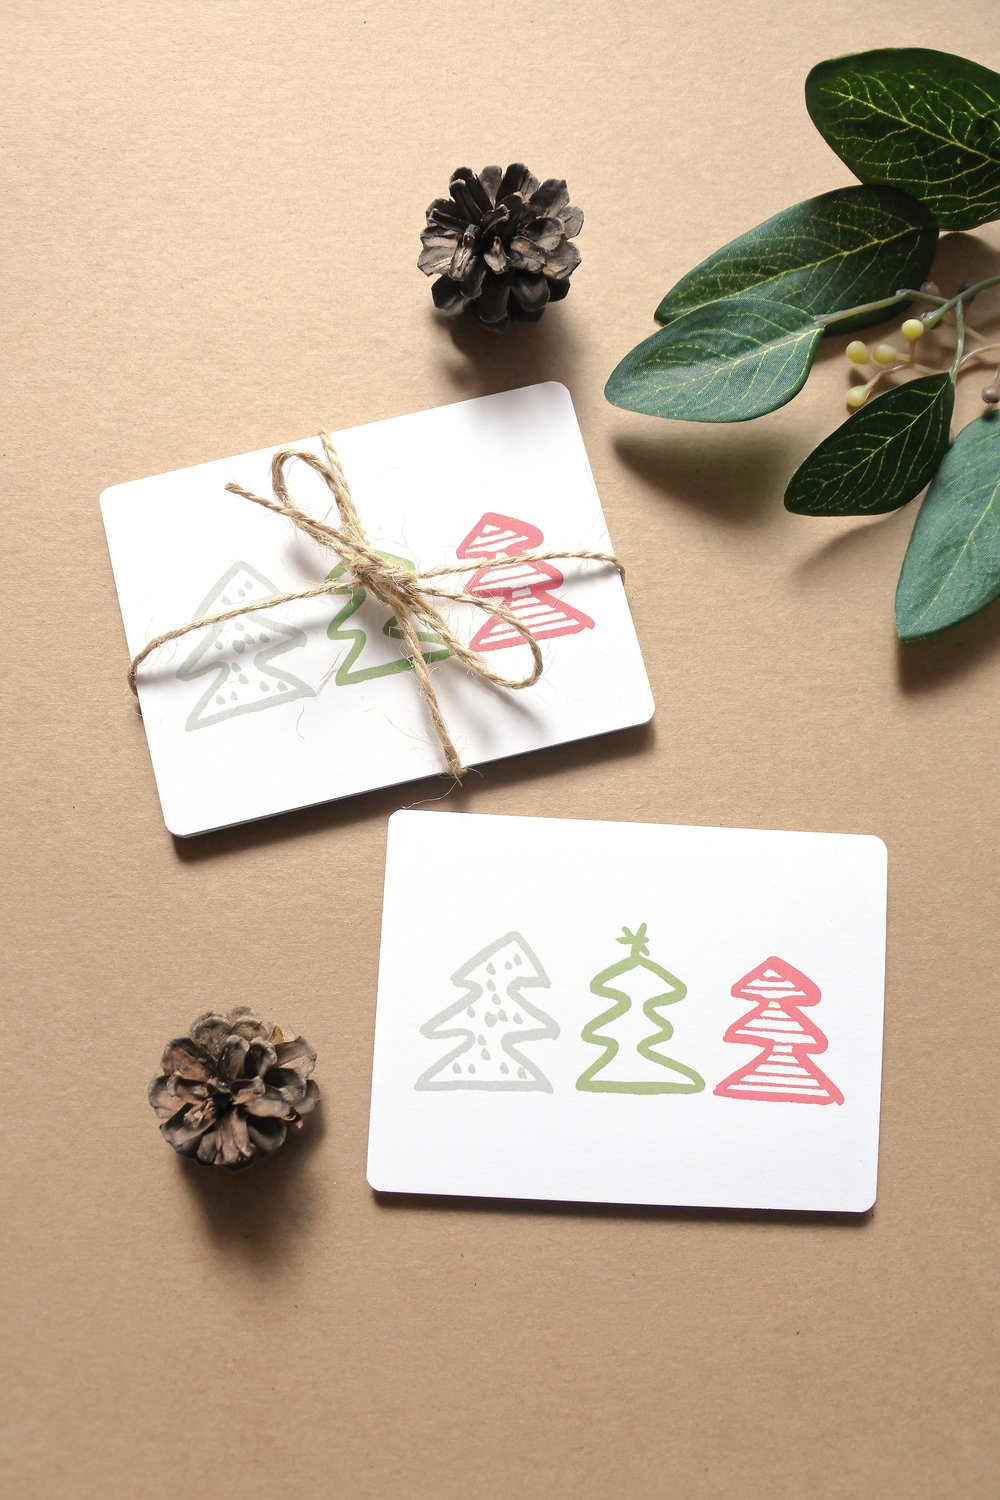 More Trees! Tree Trio Mini Note Cards available HERE